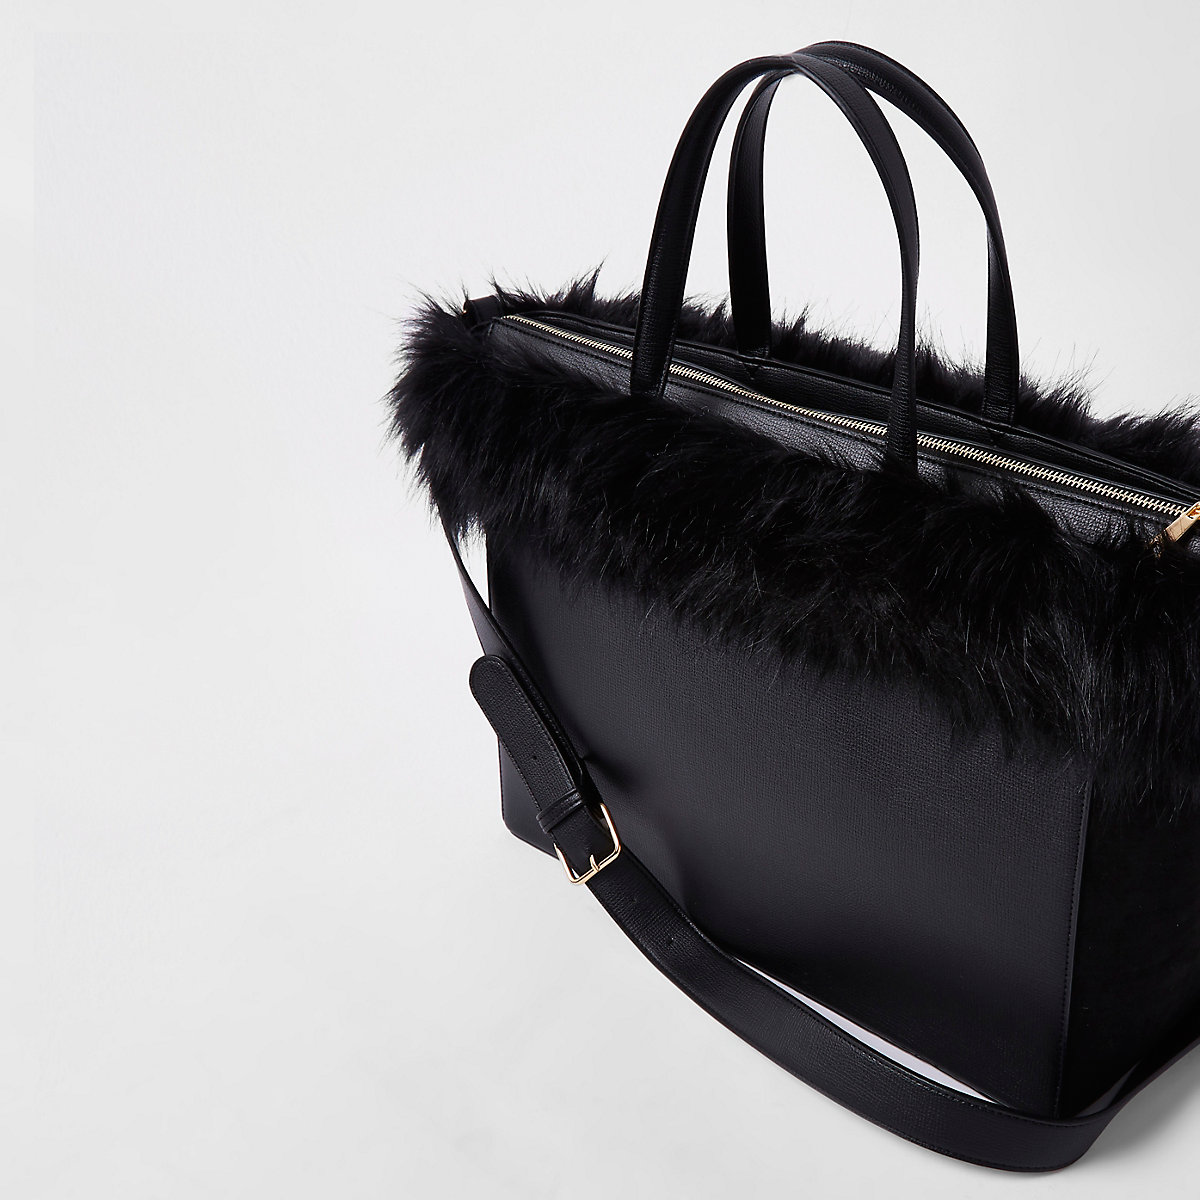 49a43d384858 Black faux fur trim winged tote bag - Shopper   Tote Bags - Bags ...